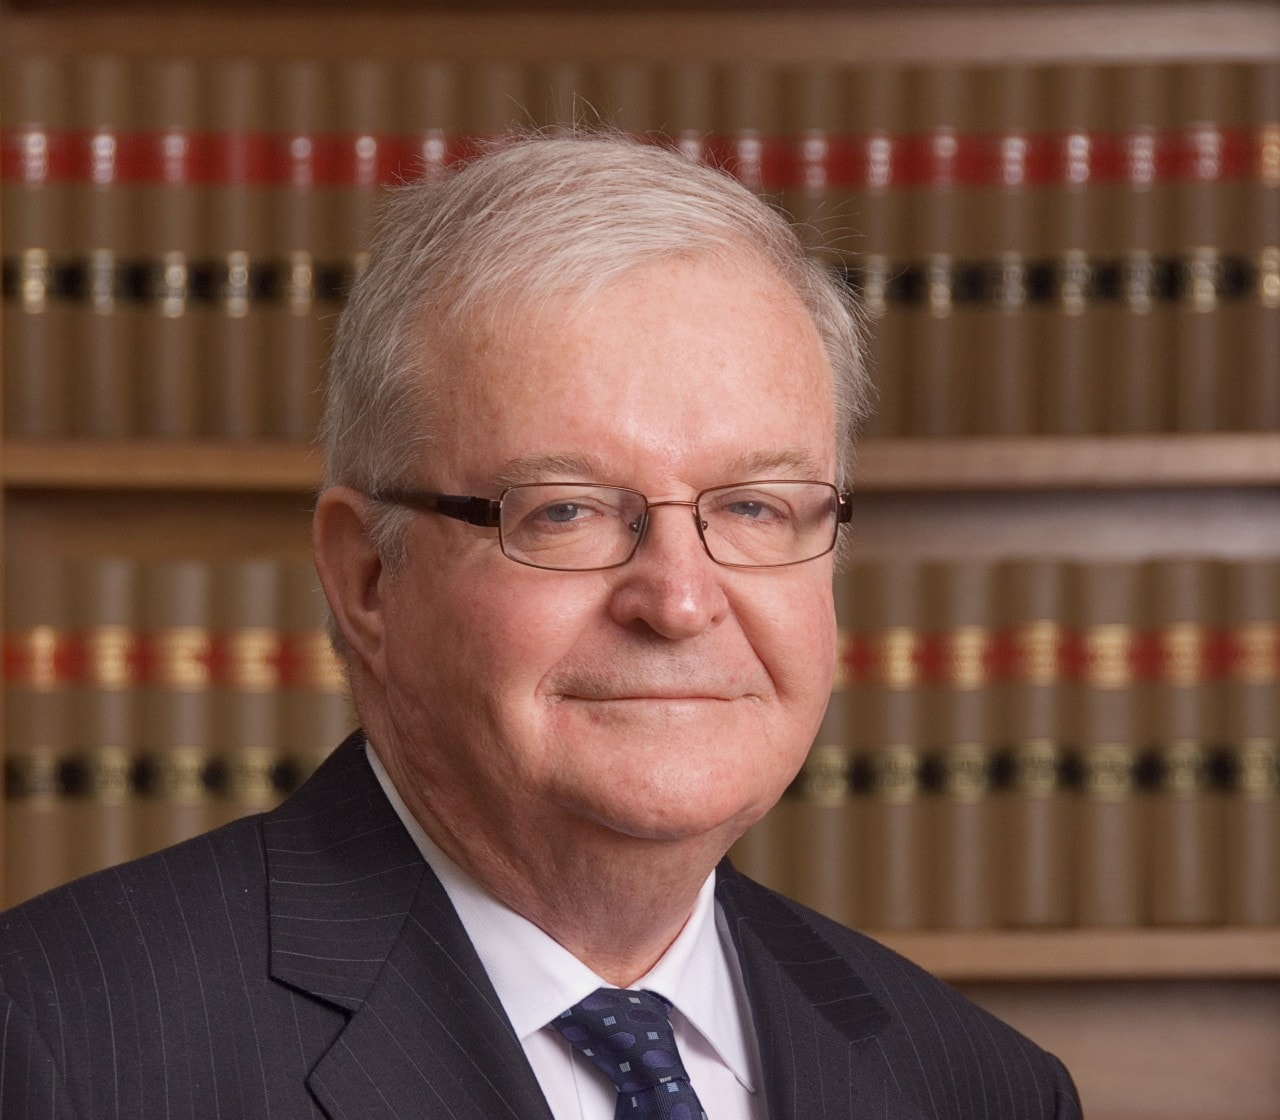 The Hon Chief Justice Bathurst